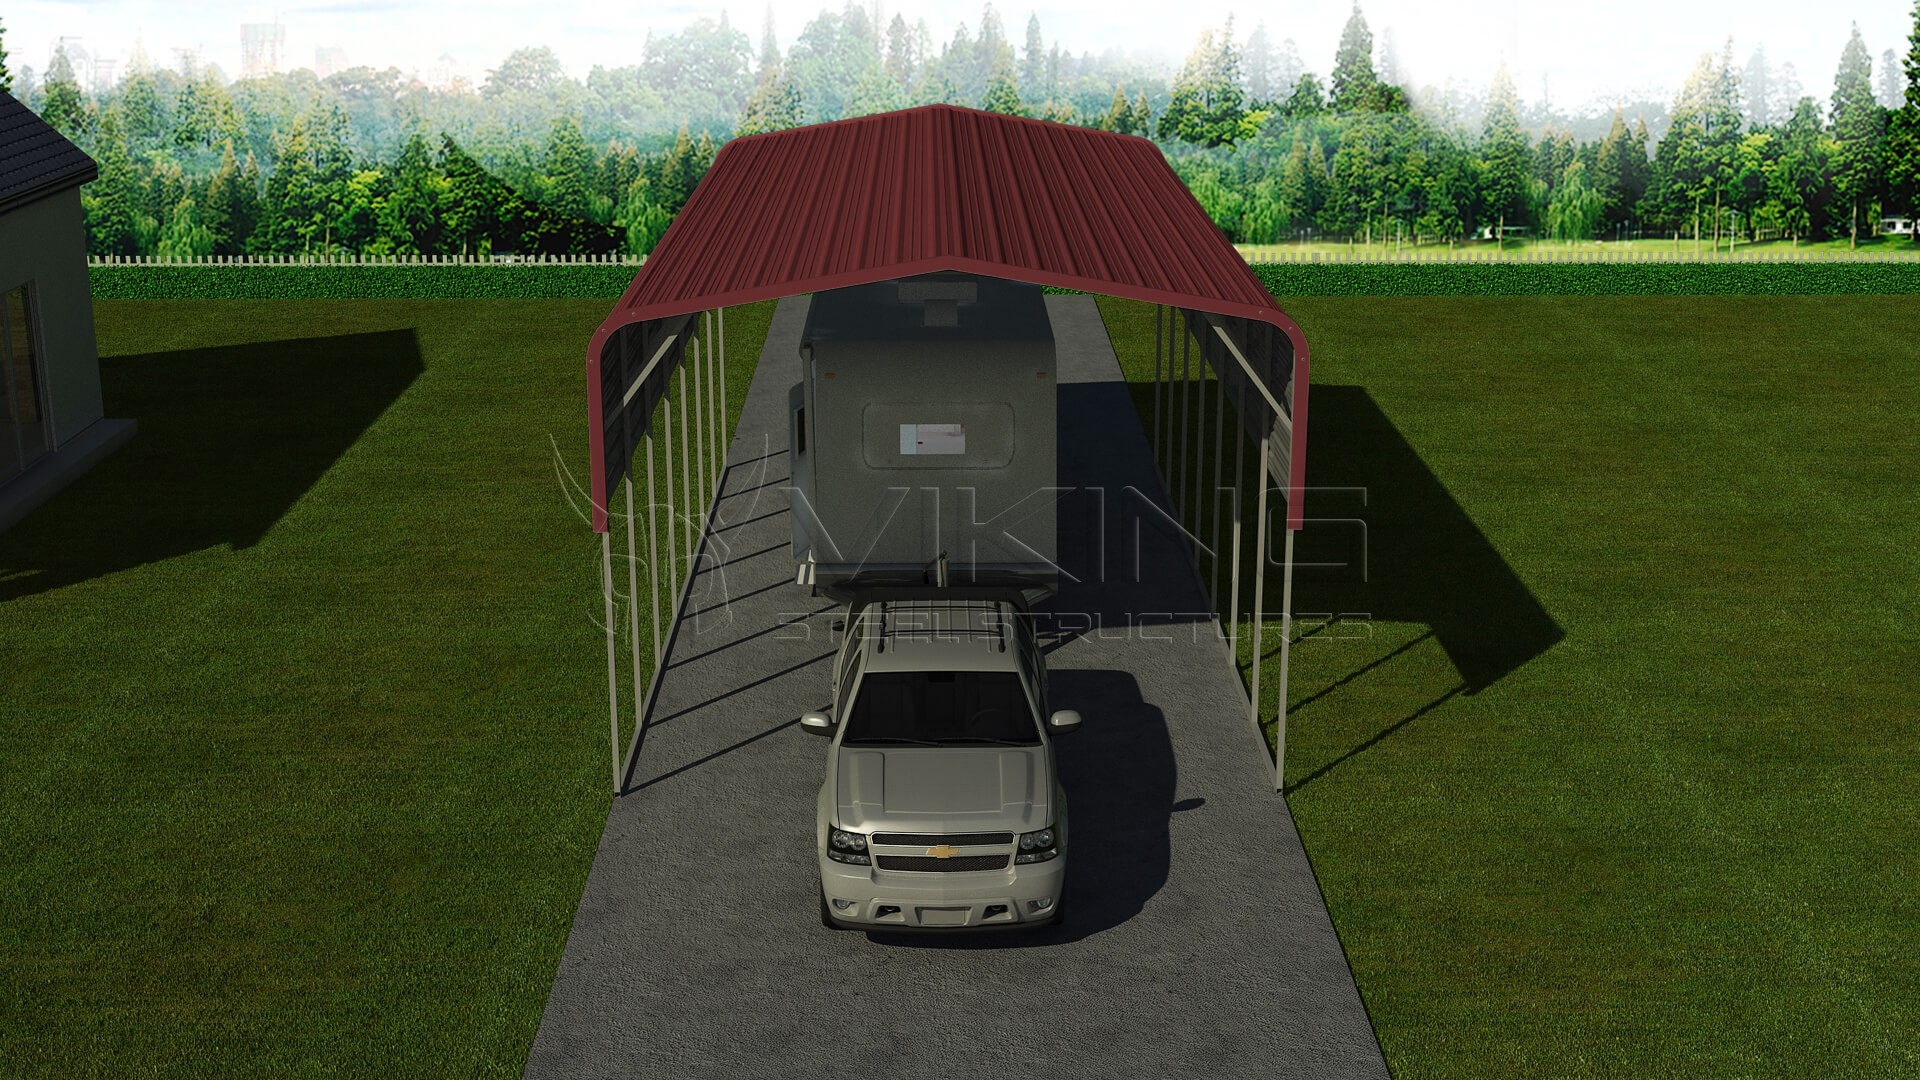 18x36-metal-rv-carport-top-barnred-image